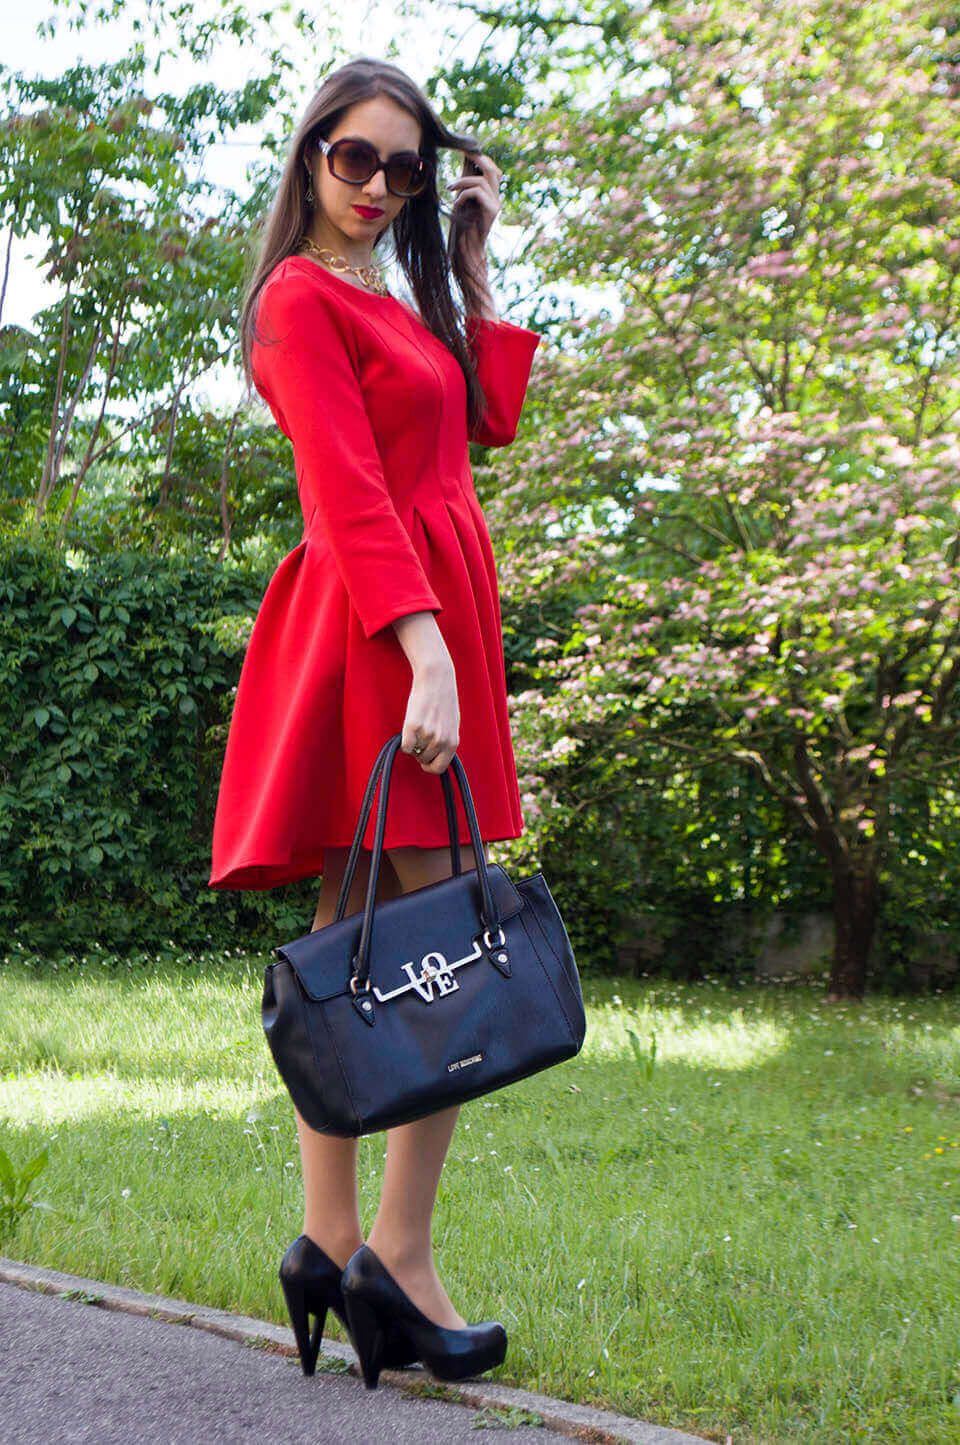 Red dress - Stylewe outfit